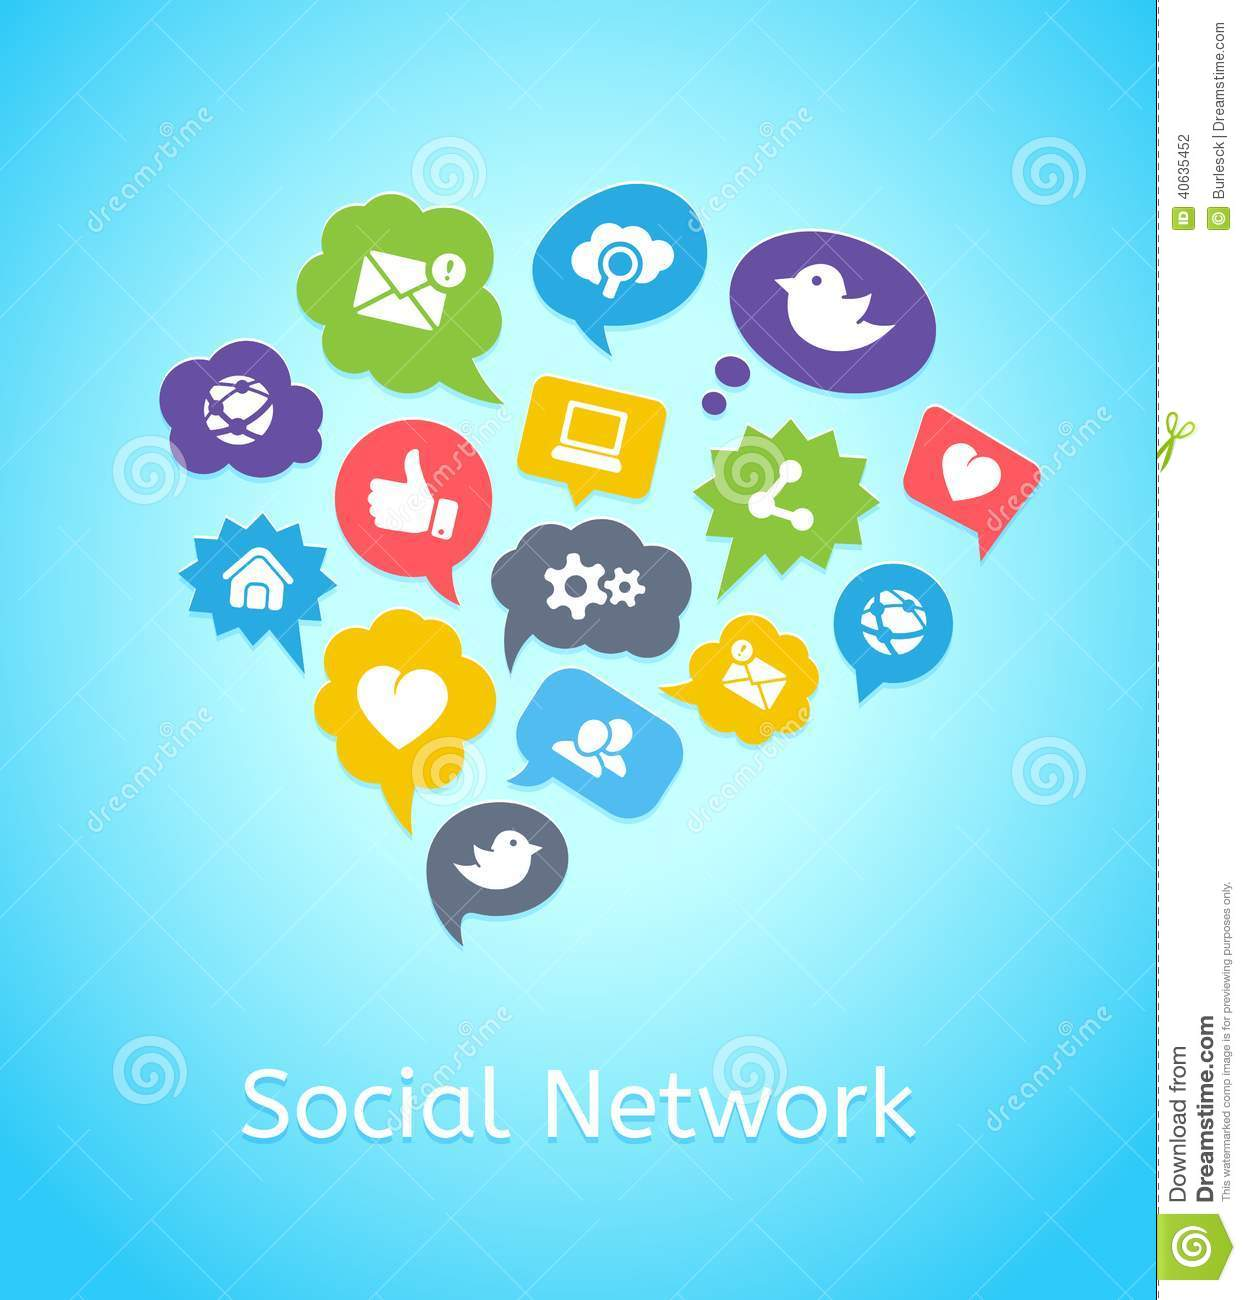 Social Network Wallpapers - WallpaperPulse